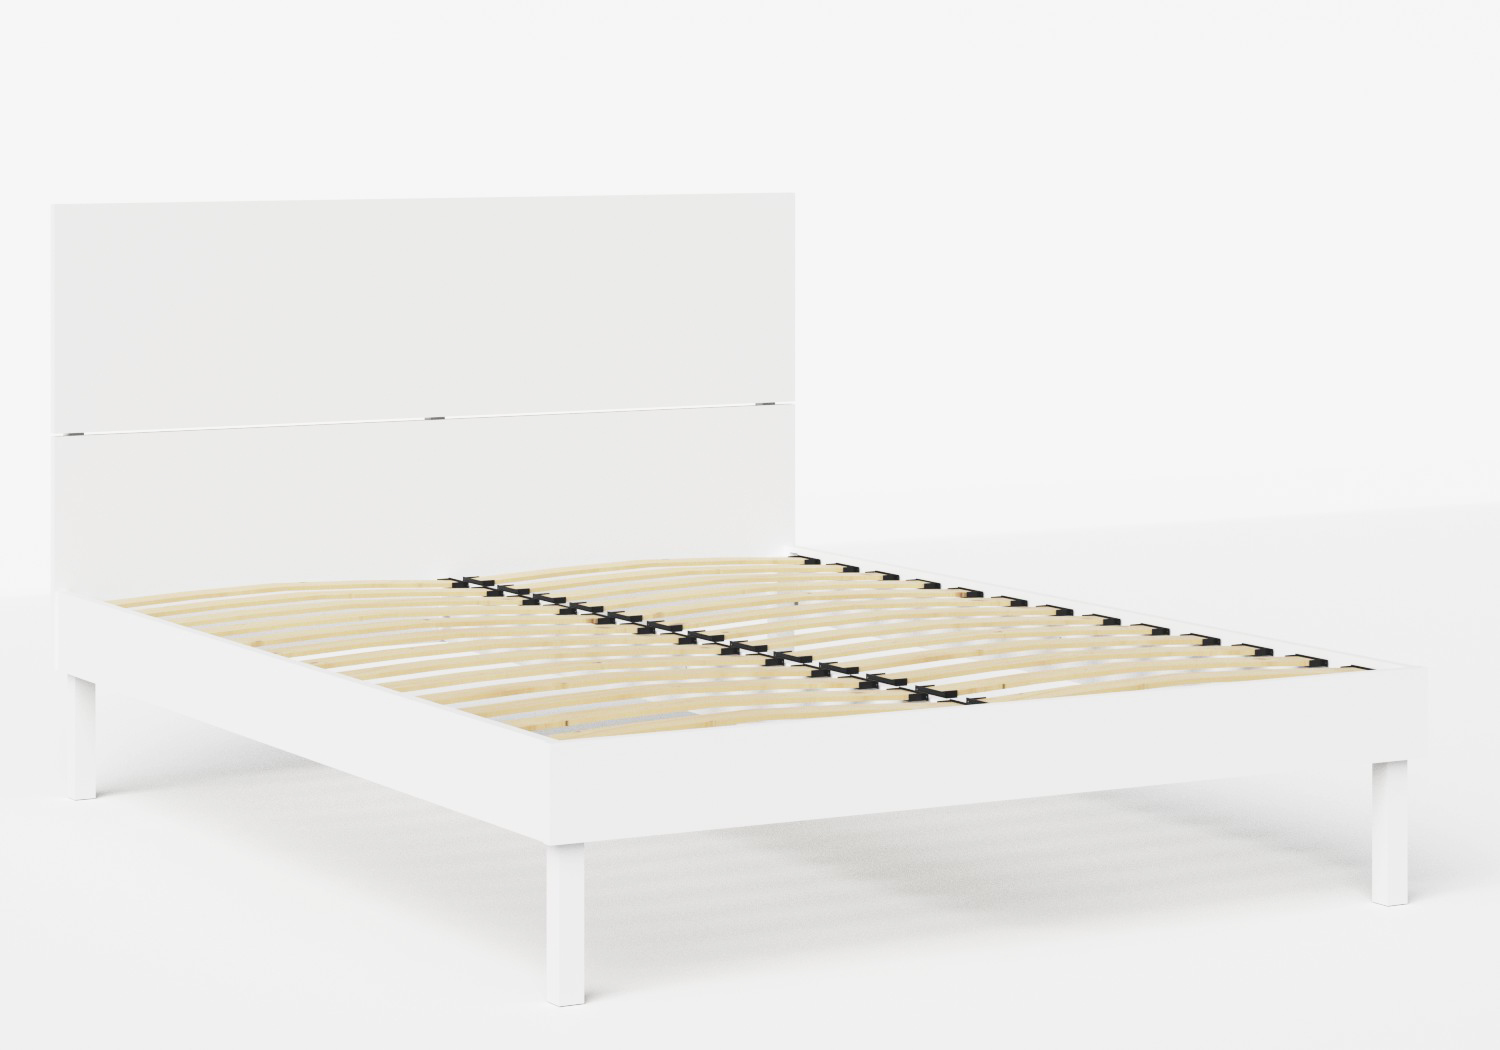 Misaki Wood Bed in White shown with slatted frame